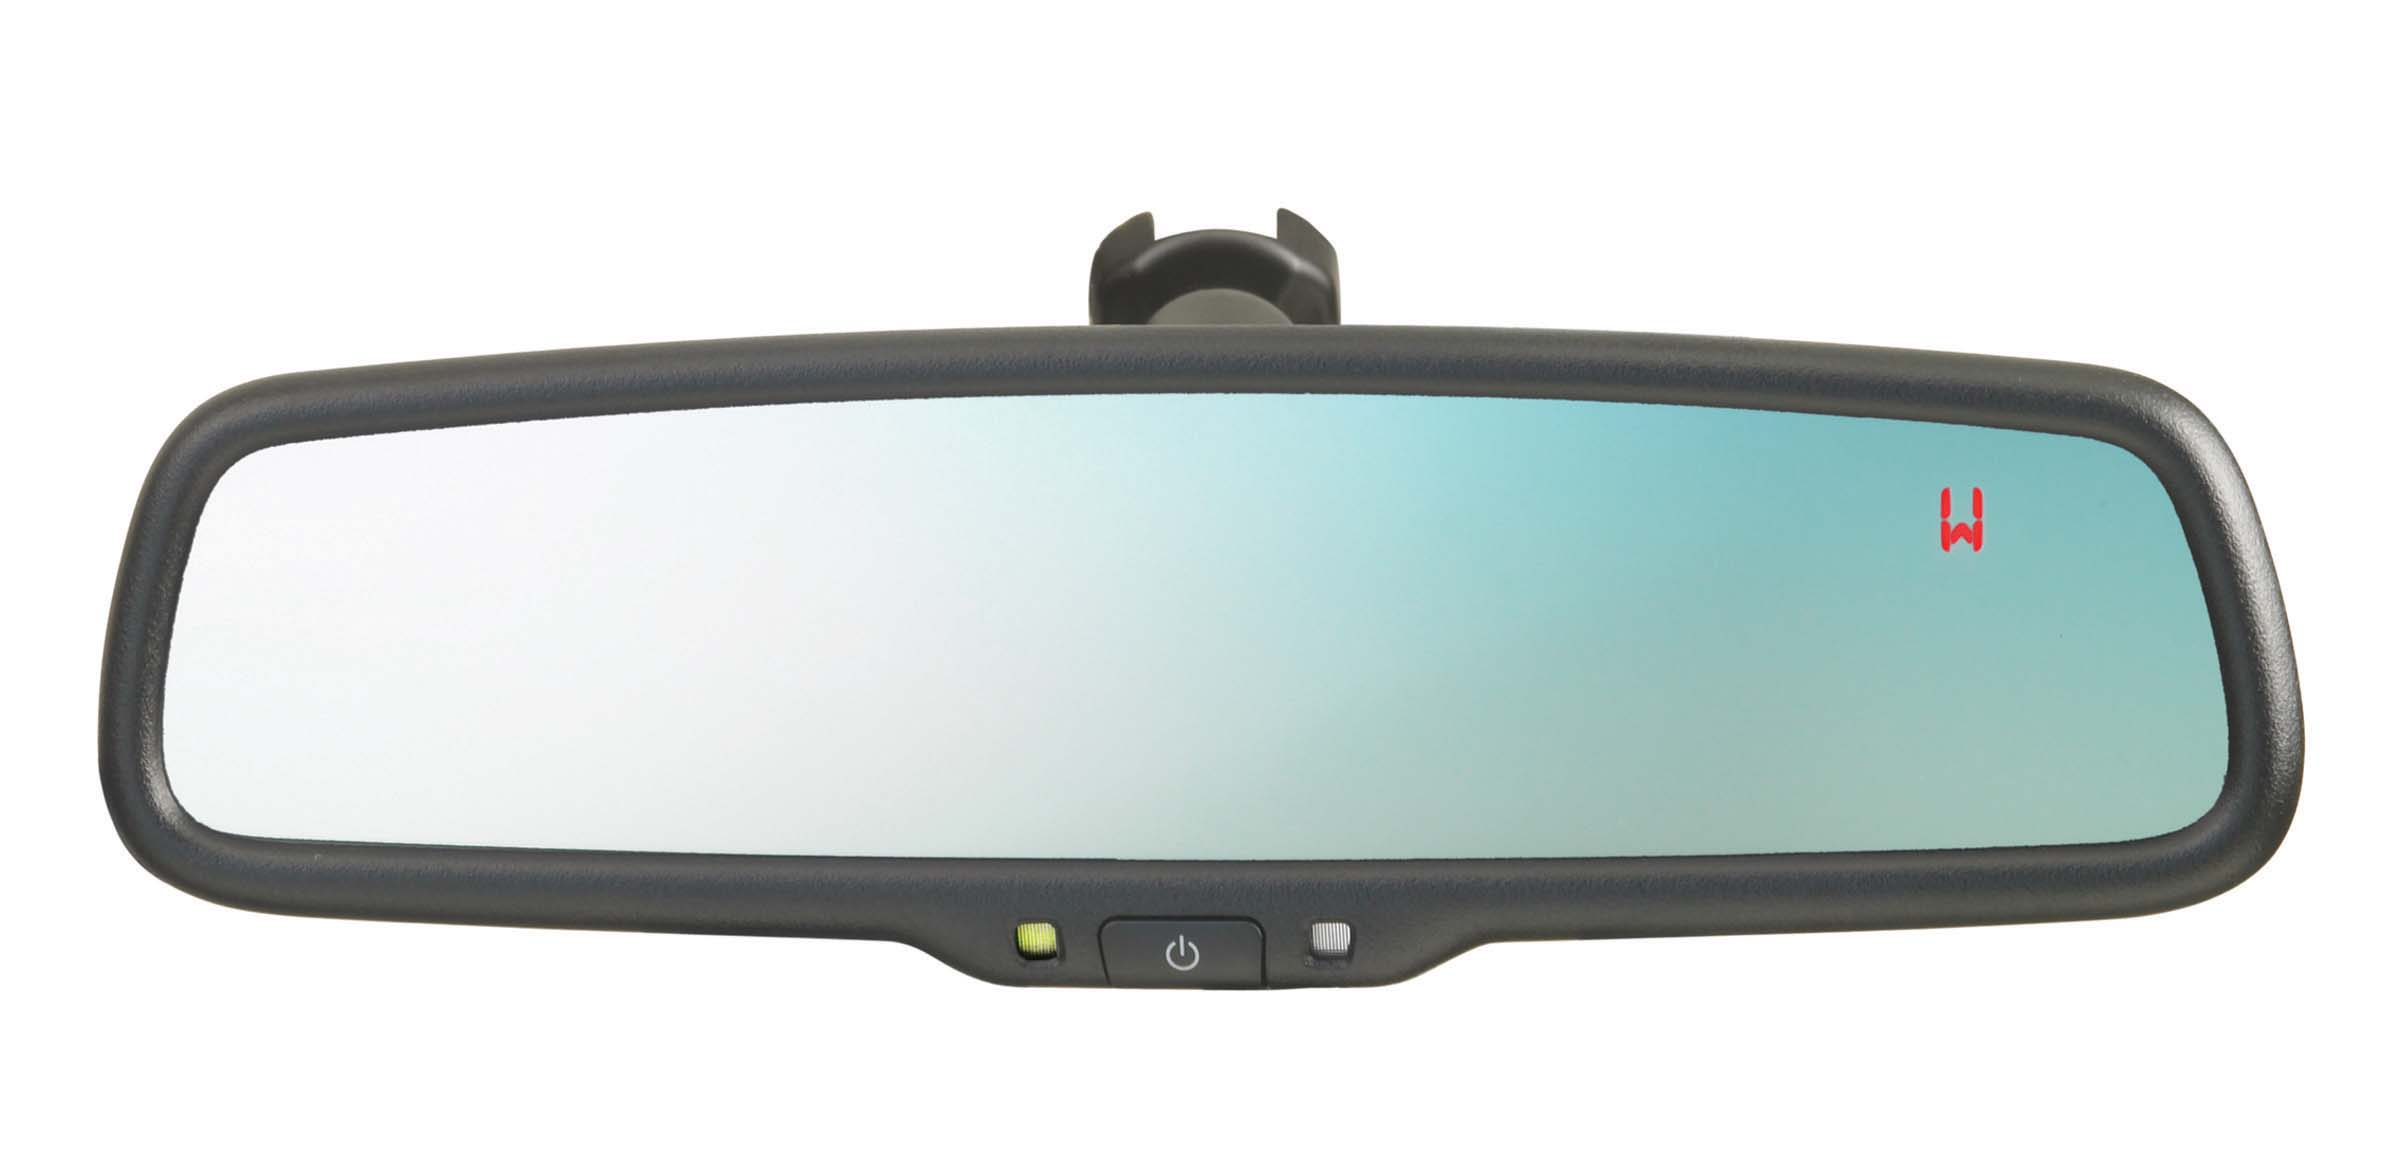 H501SSG001 Product Image